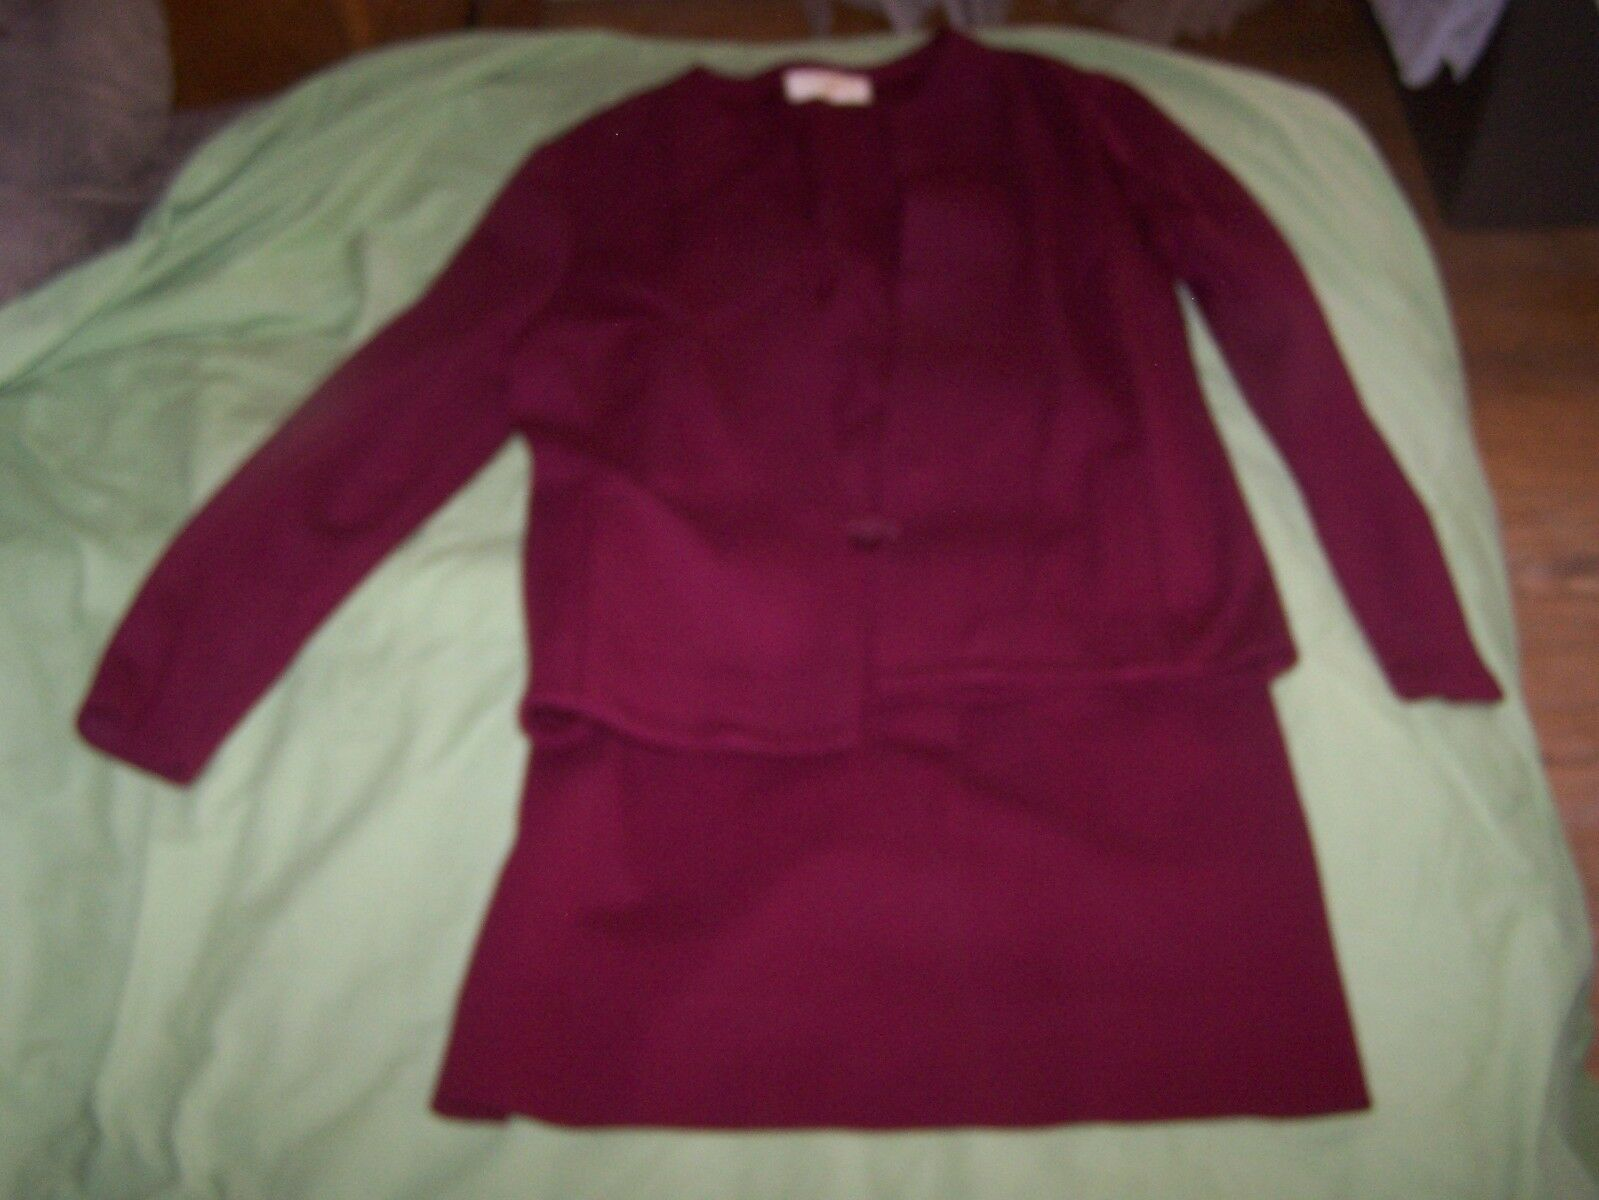 Vintage 1950s 60s Maroon Catalina Blazer Skirt Suit Size 9 10